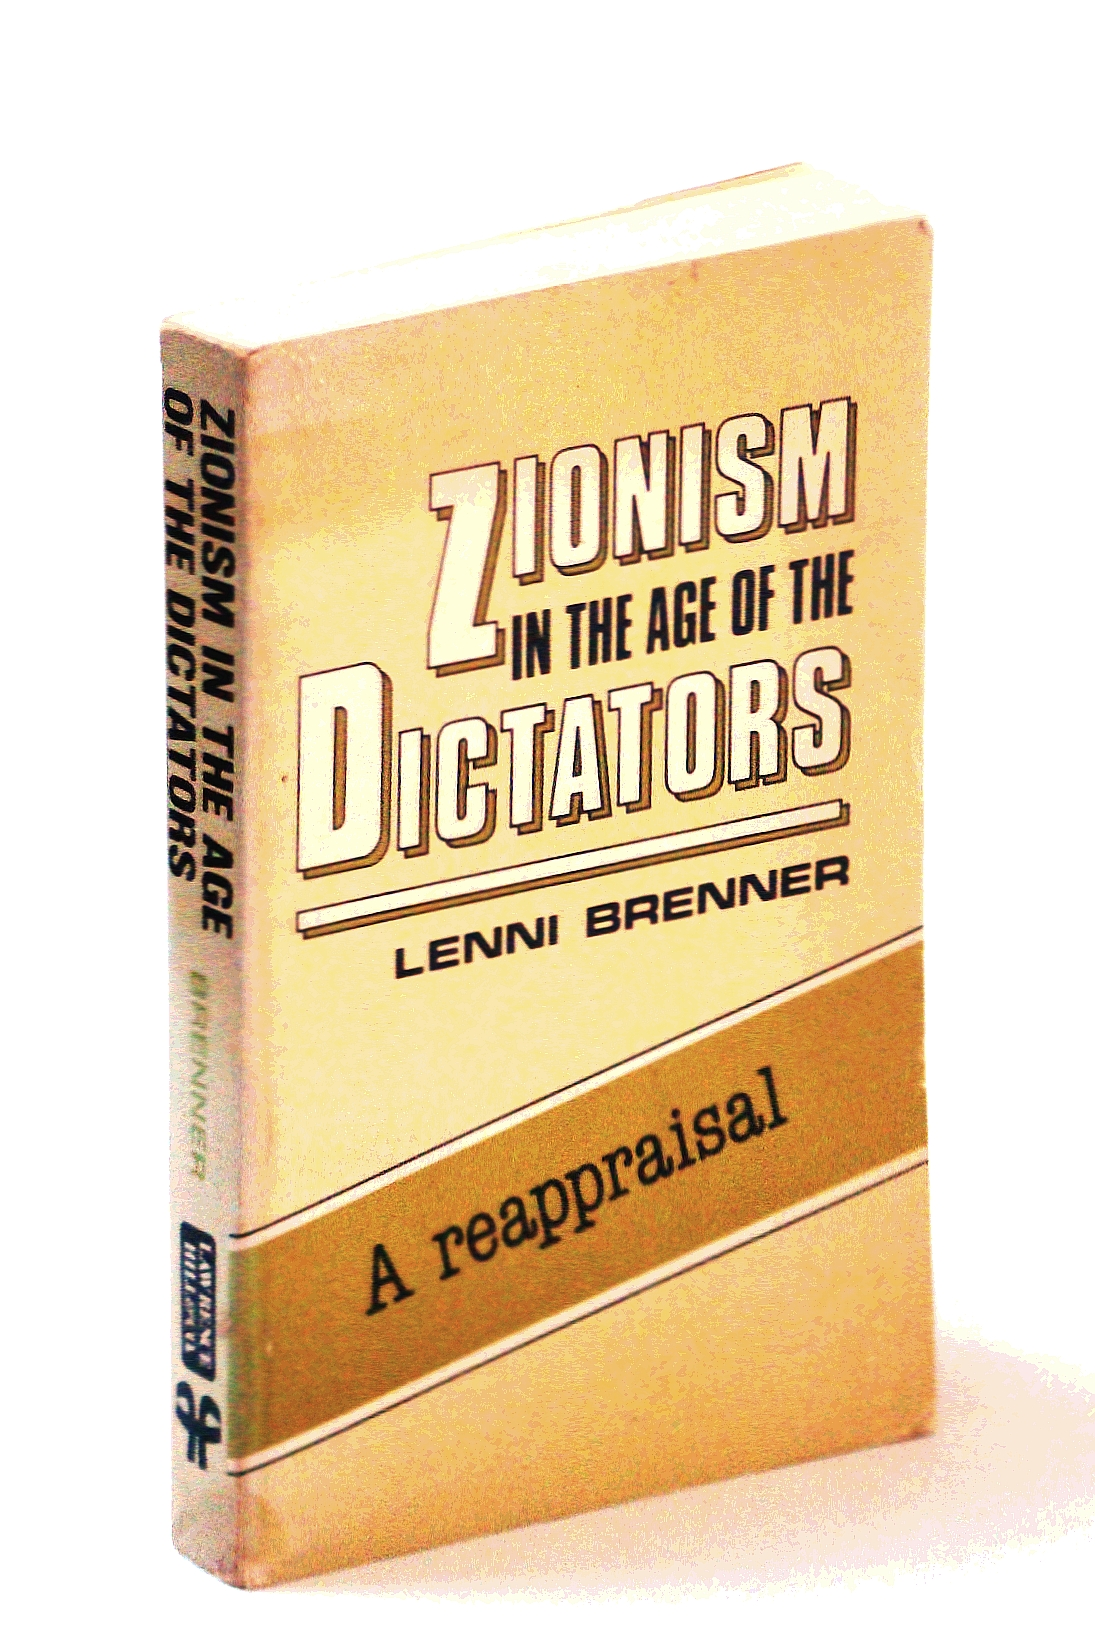 Zionism in the Age of the Dictators